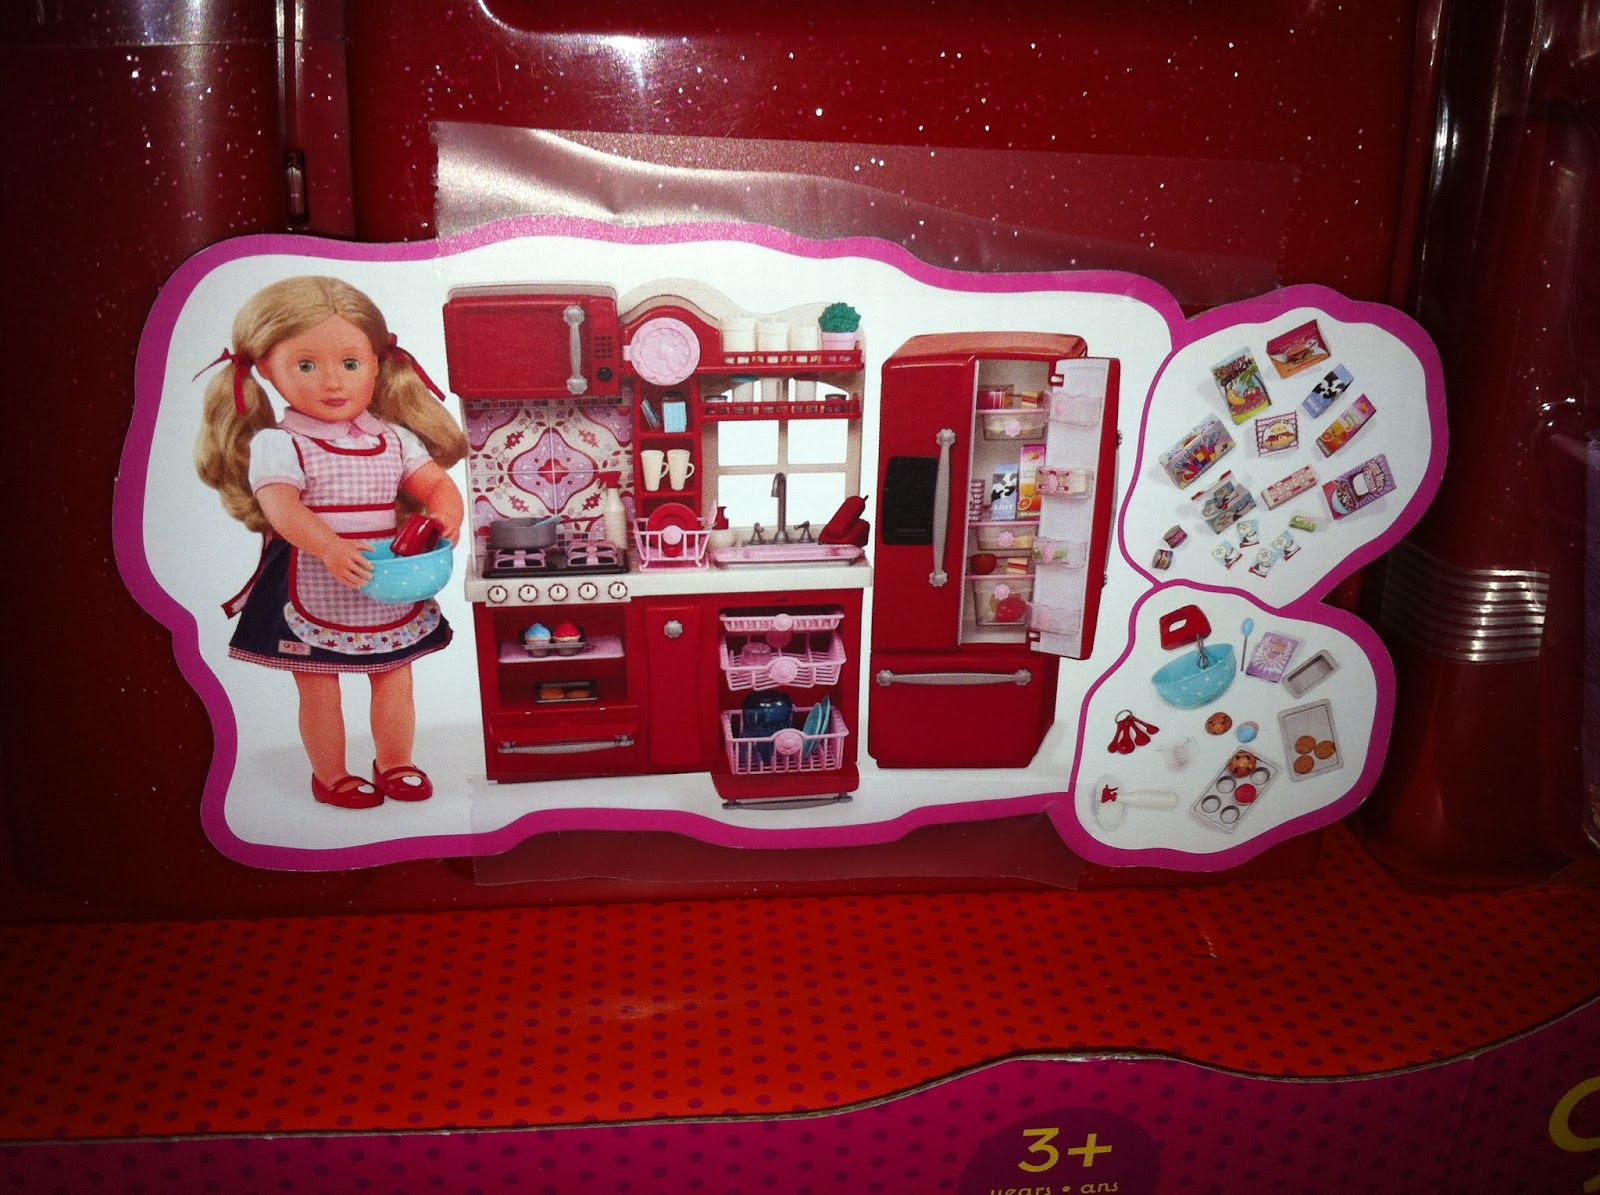 A little doll will do it.....: Our Generation kitchen s